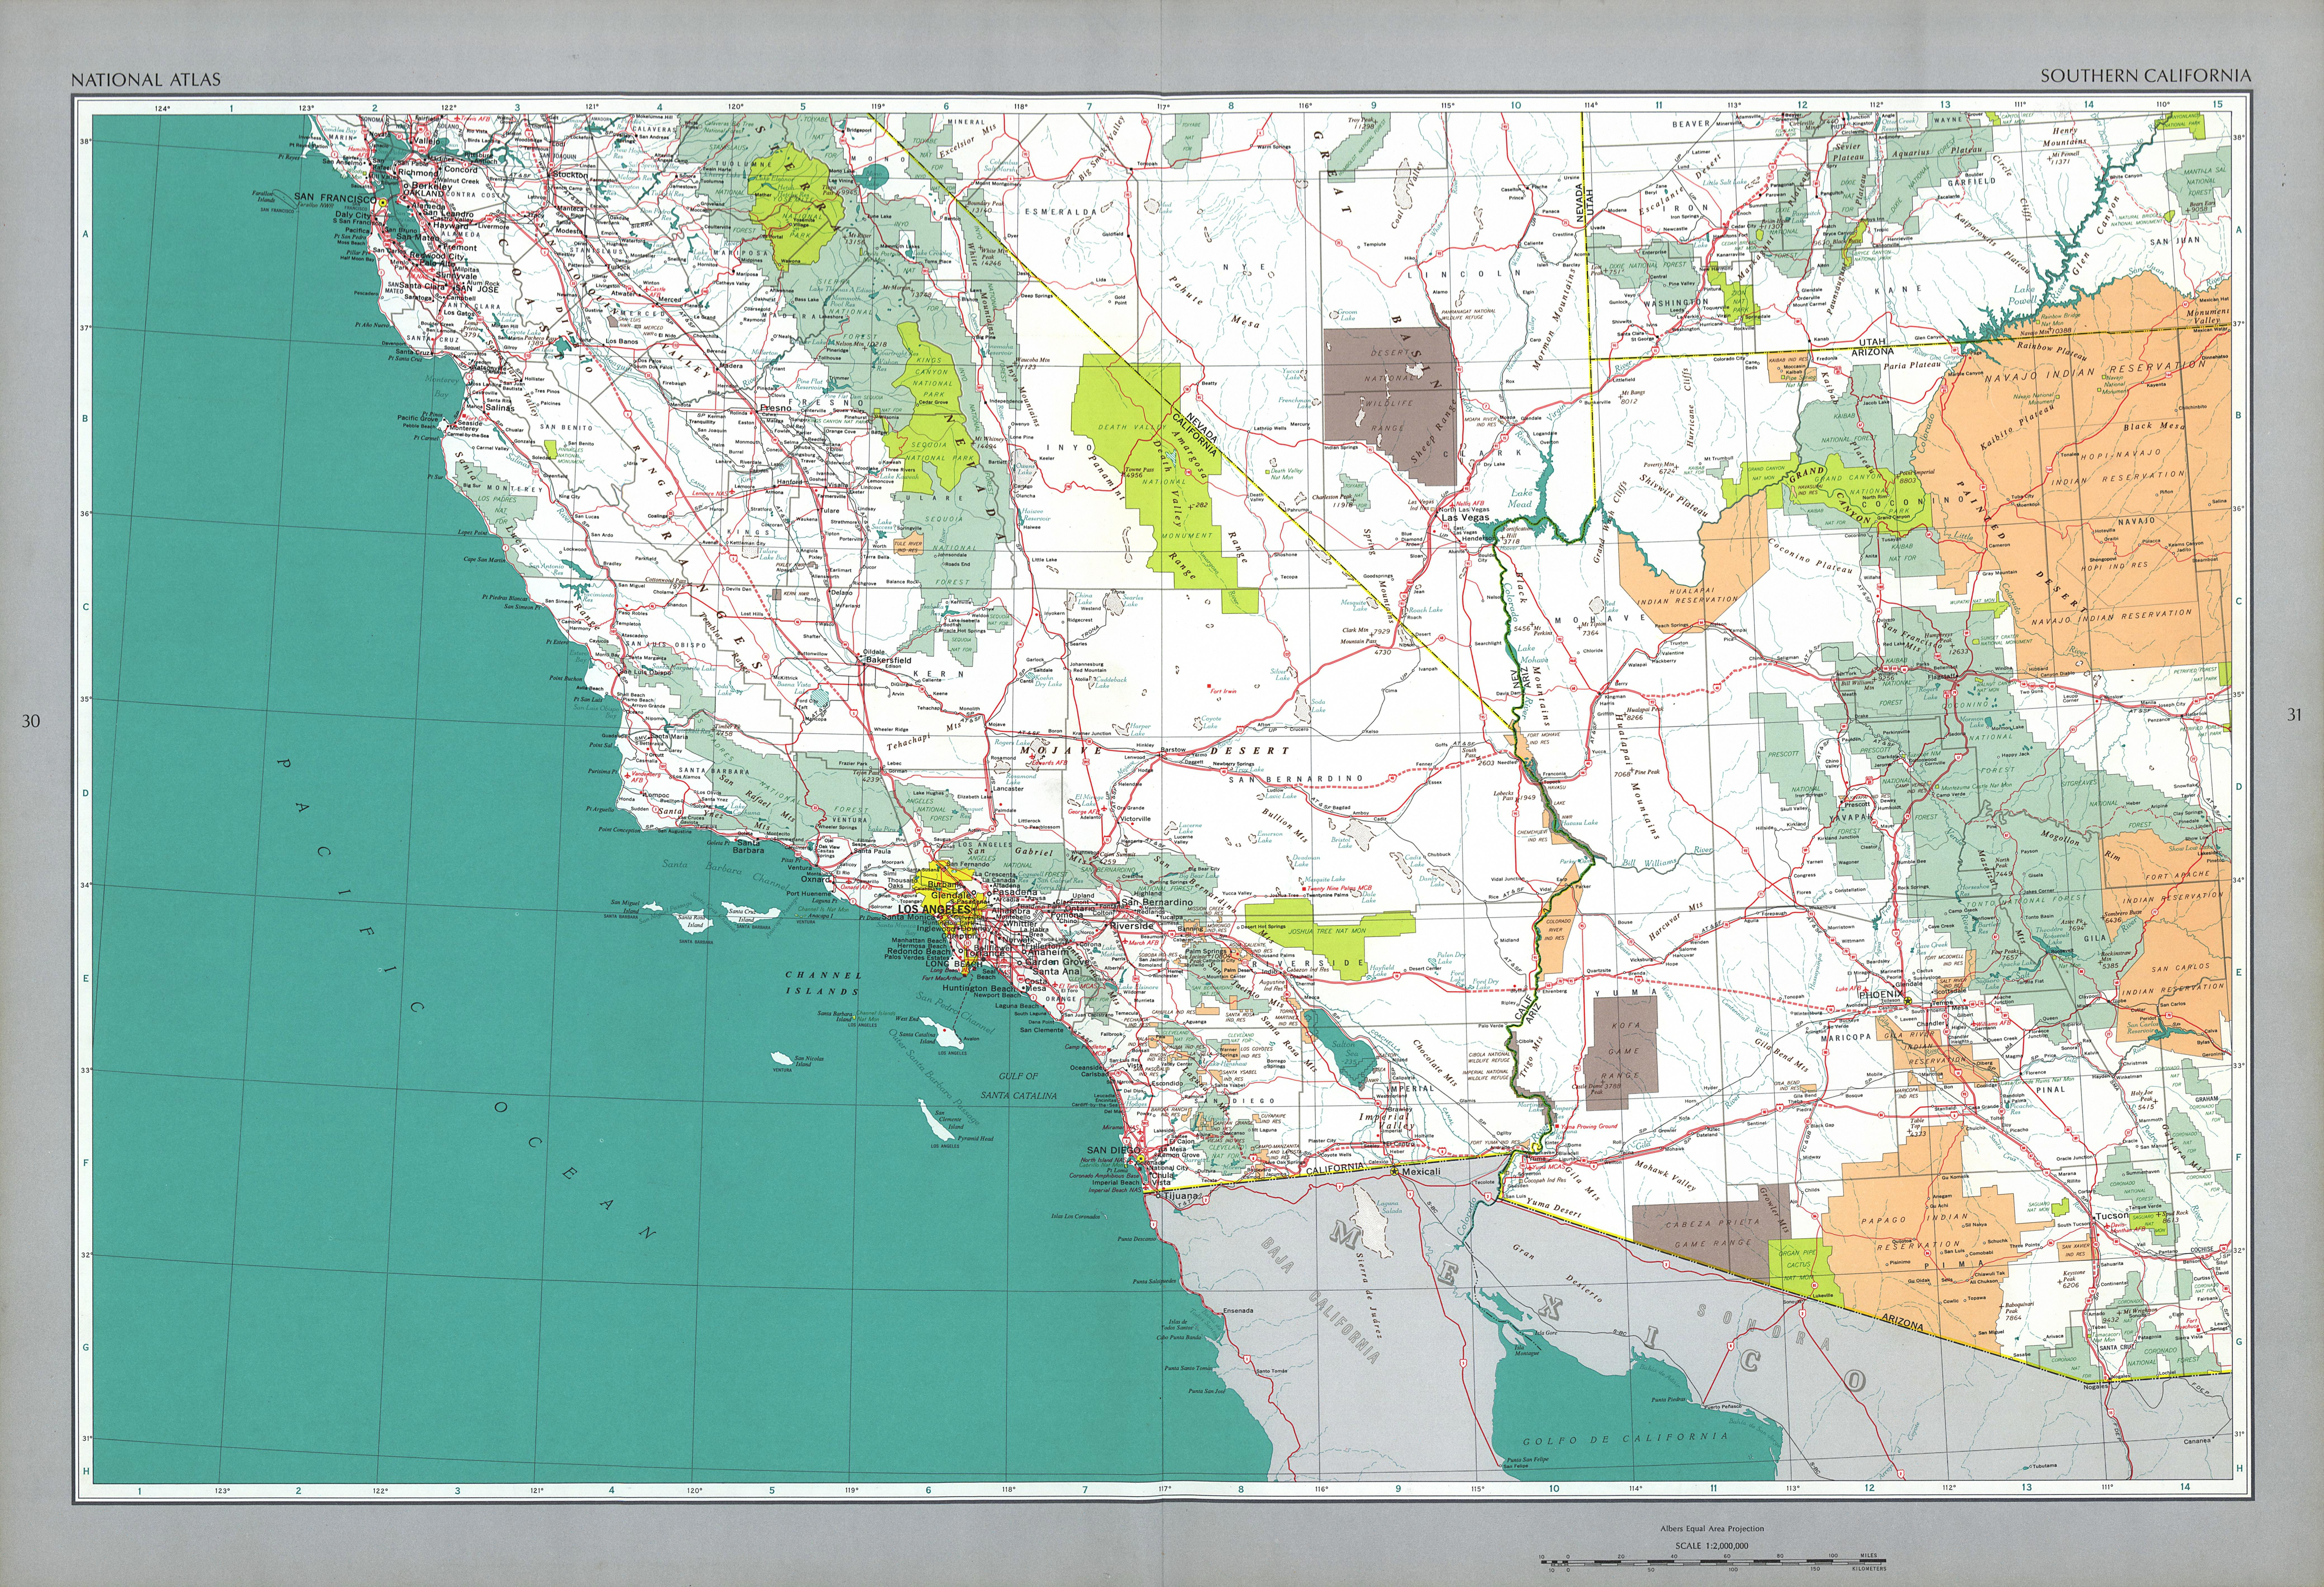 The National Atlas Of The United States Of America- Perry-Castañeda - Southern California Road Map Pdf